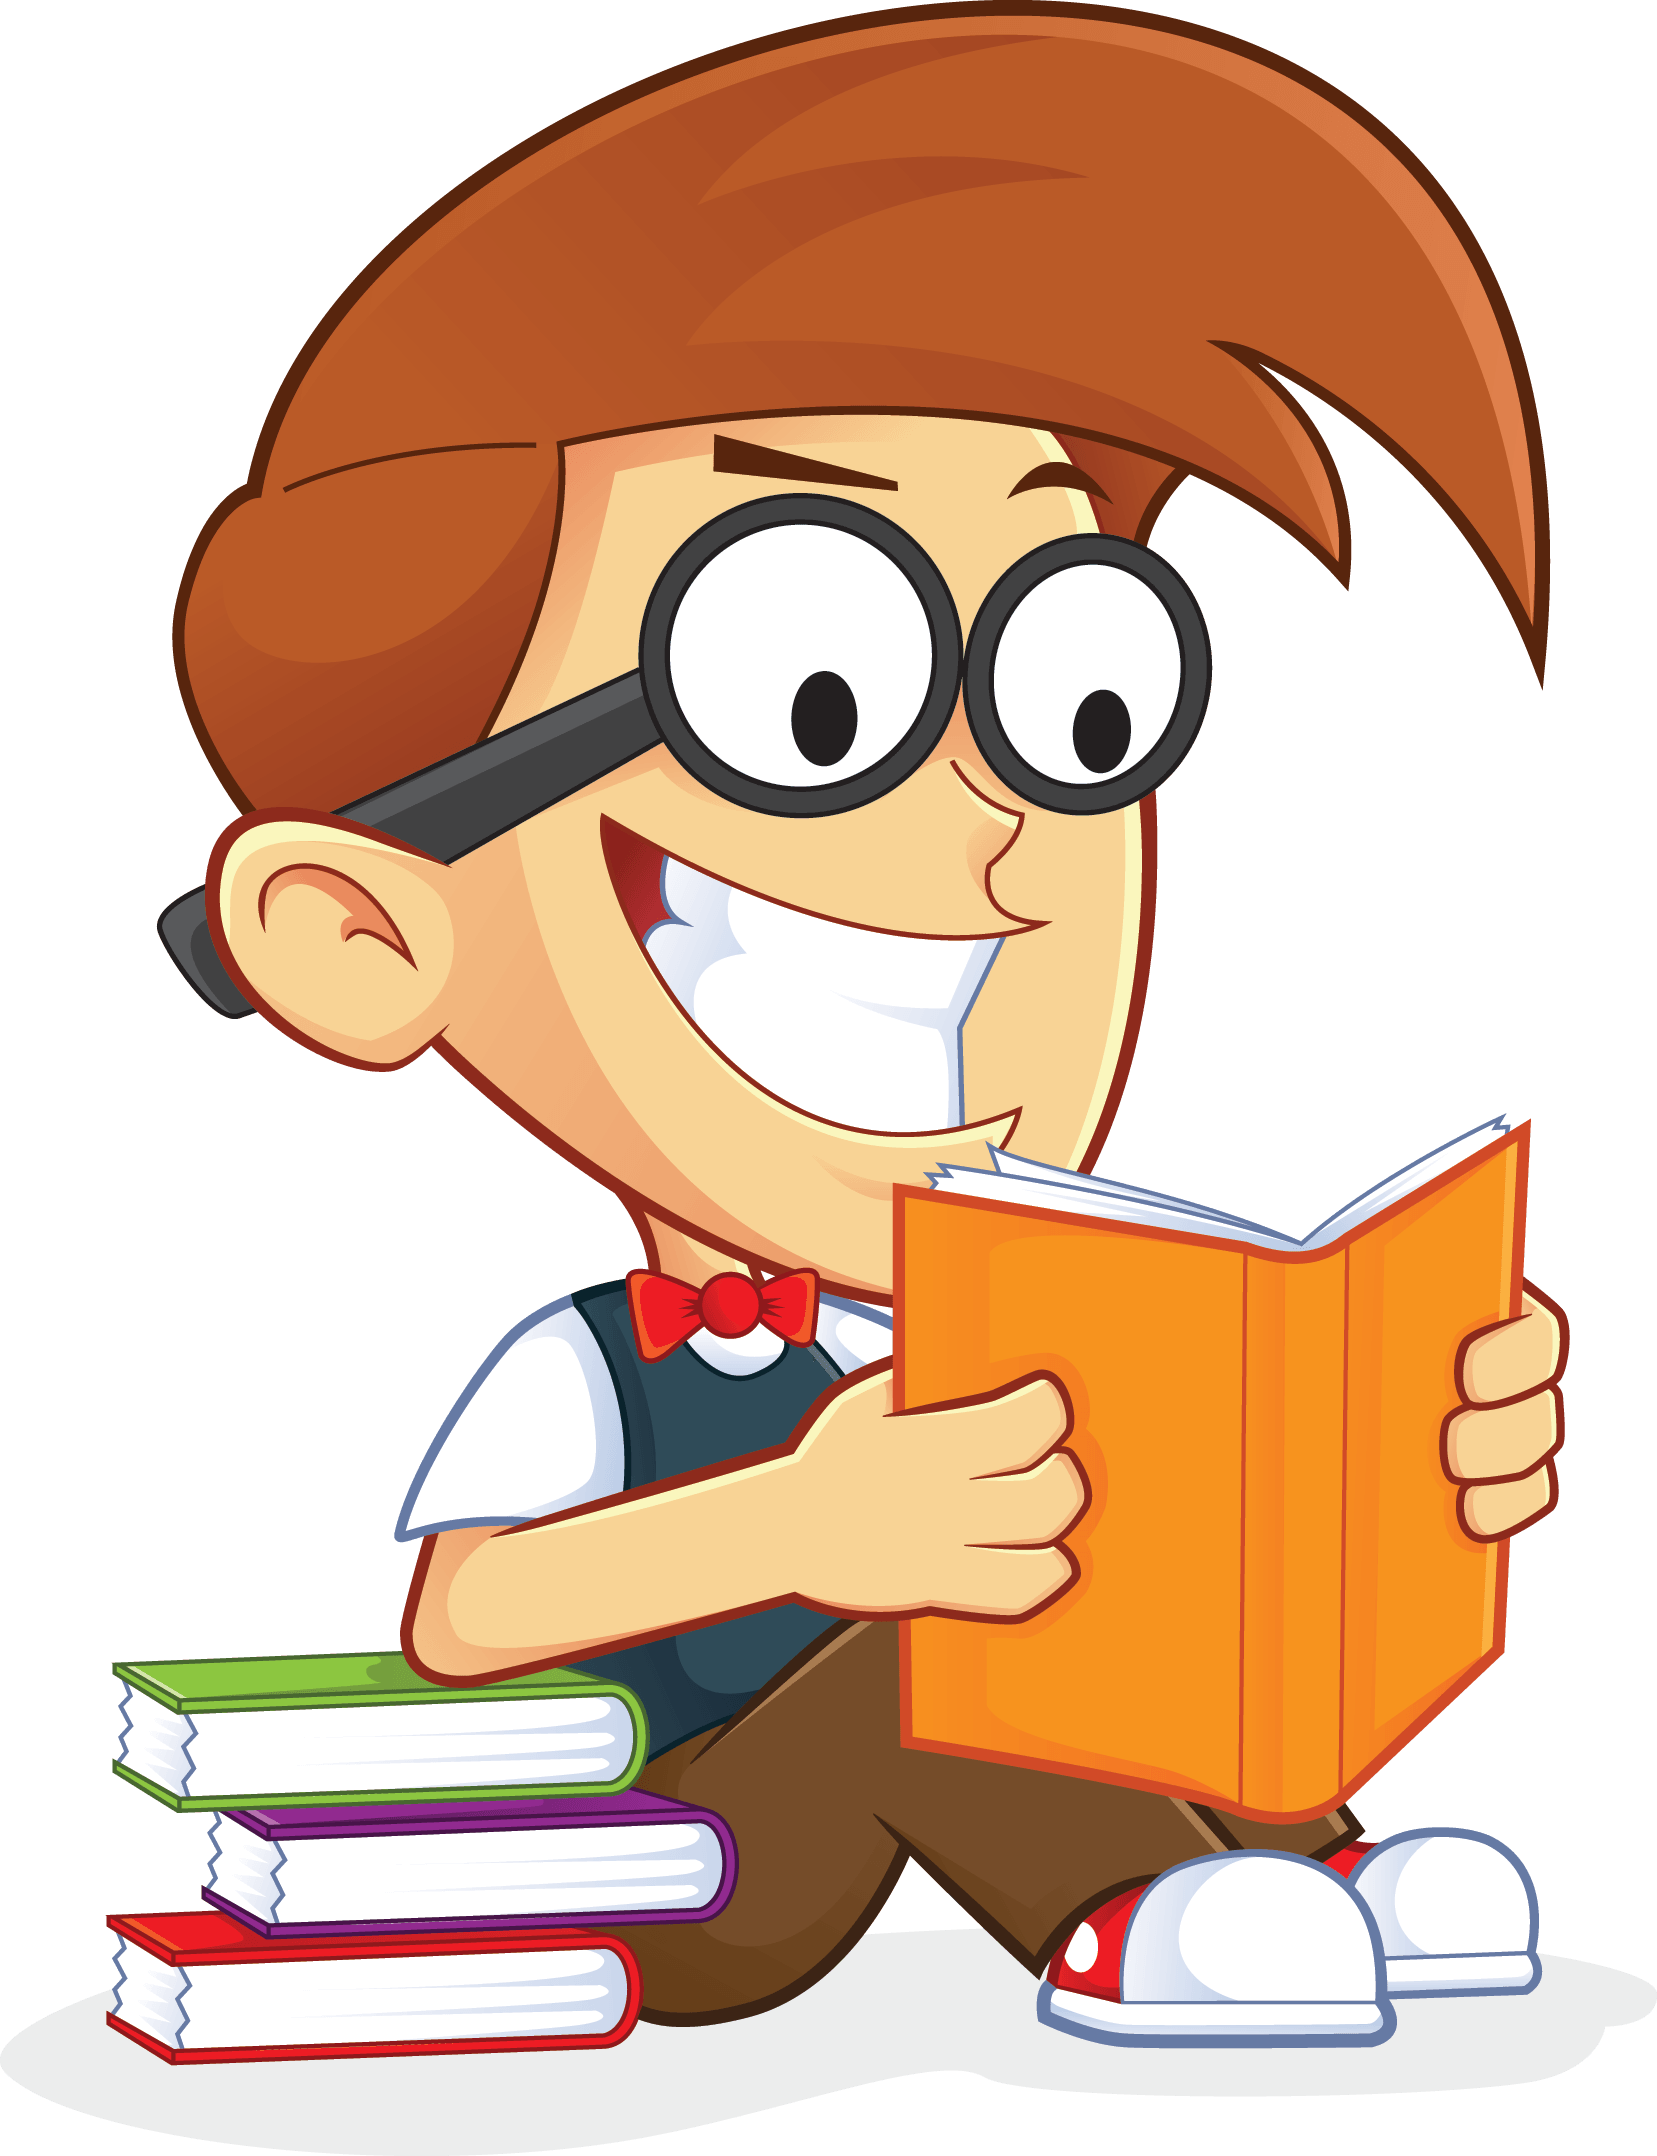 Libros Png Free Nerd Geek Reading Book People High Resolution Clip